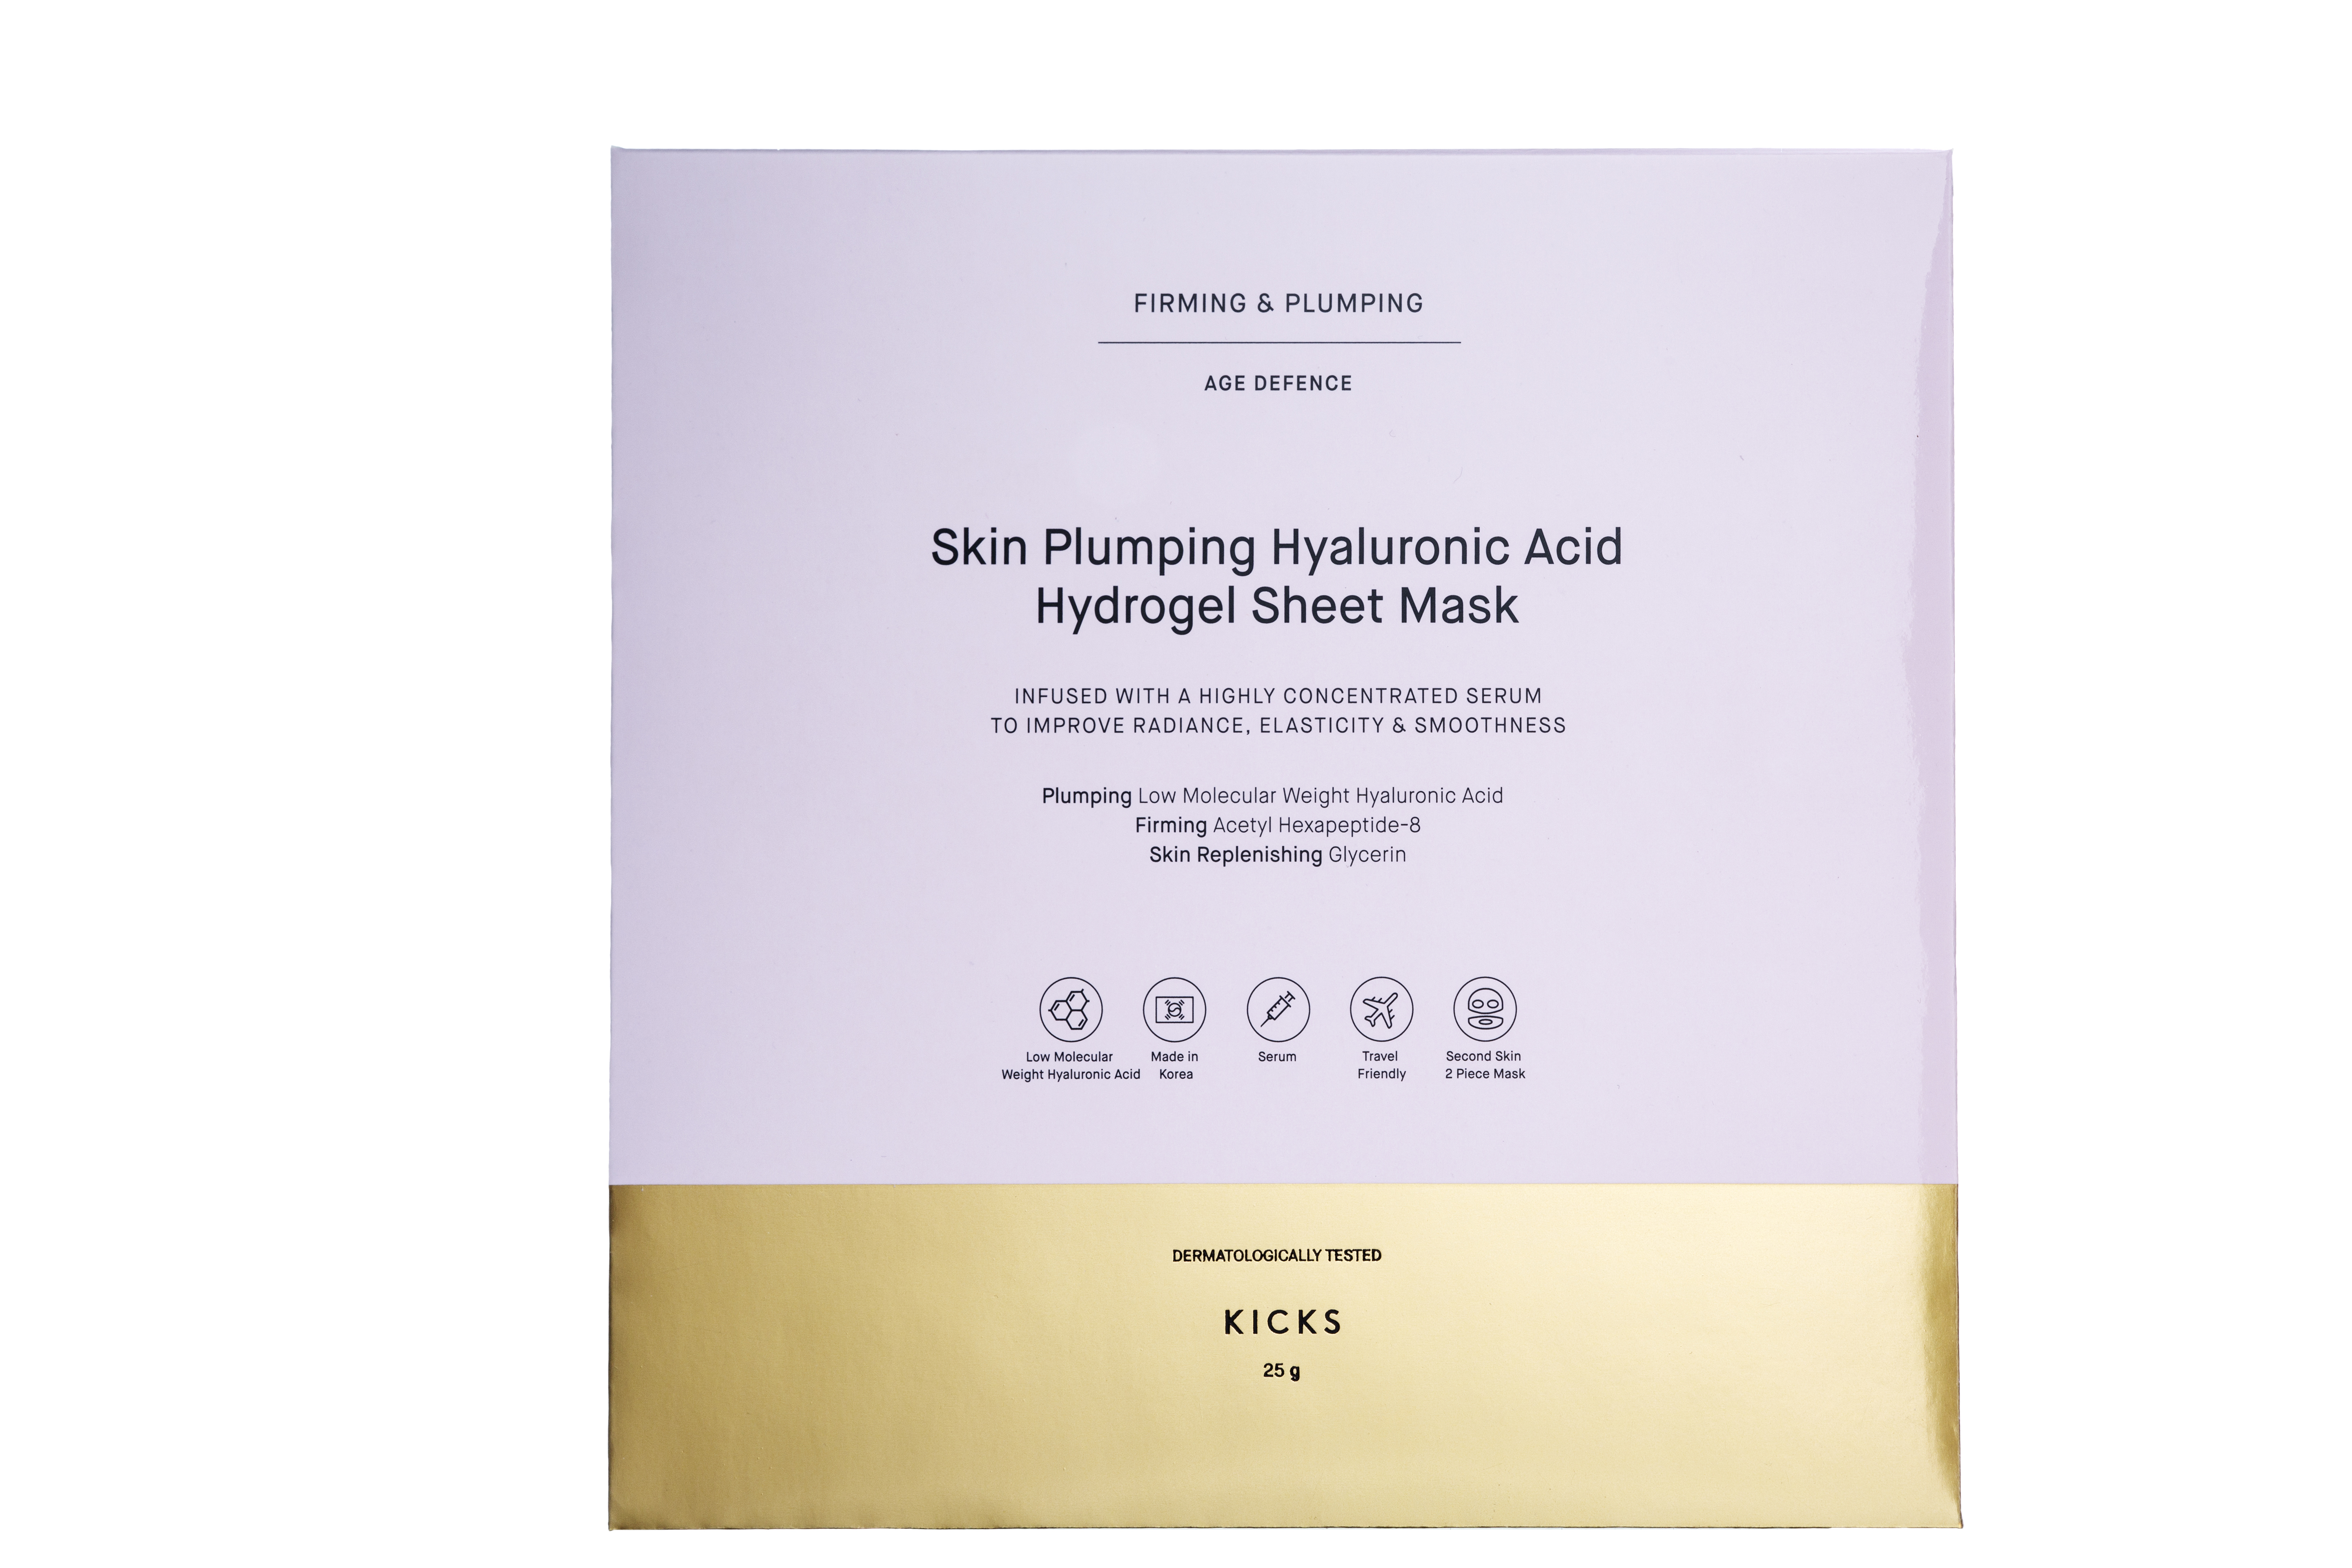 Skin Plumping Hyaluronic Acid Sheet Mask